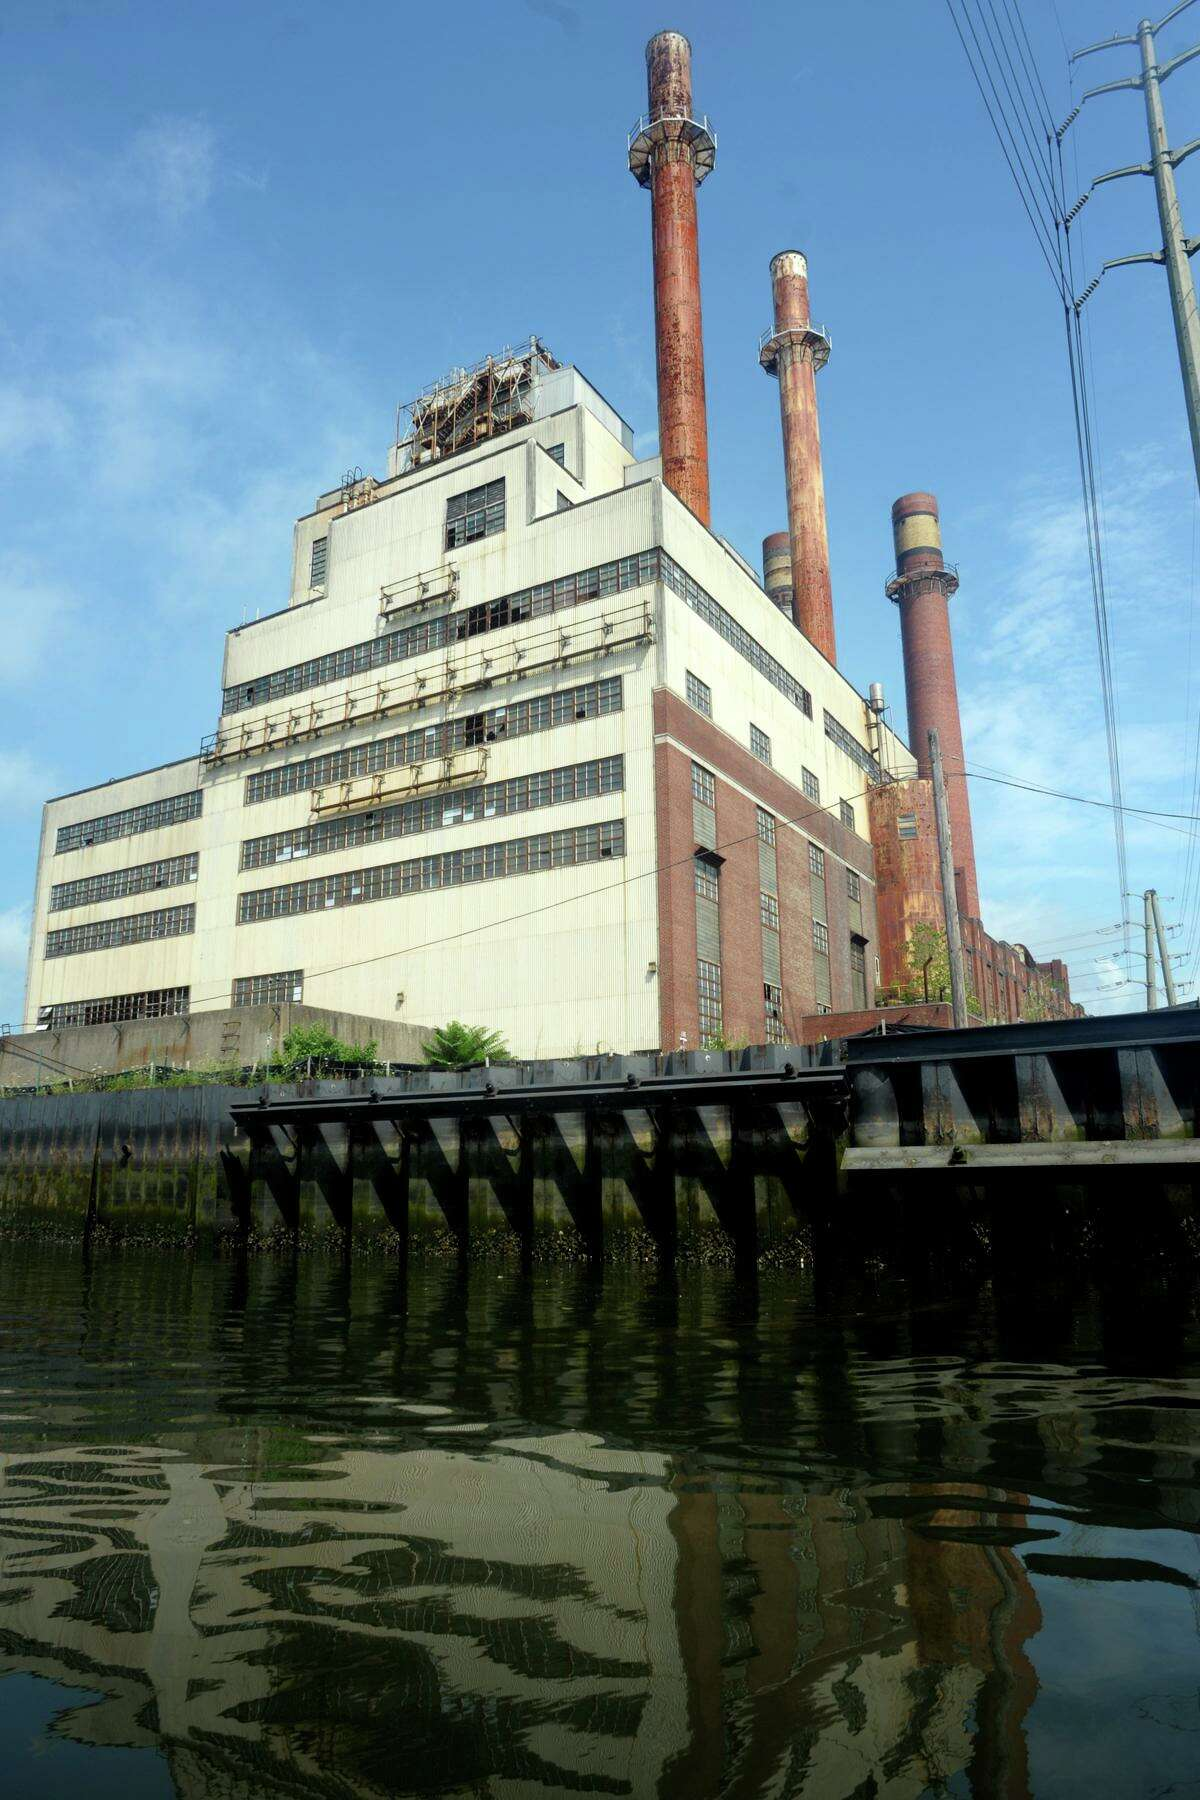 English Station, the abandoned power station, seen from the Mill River in New Haven Aug. 7, 2019.